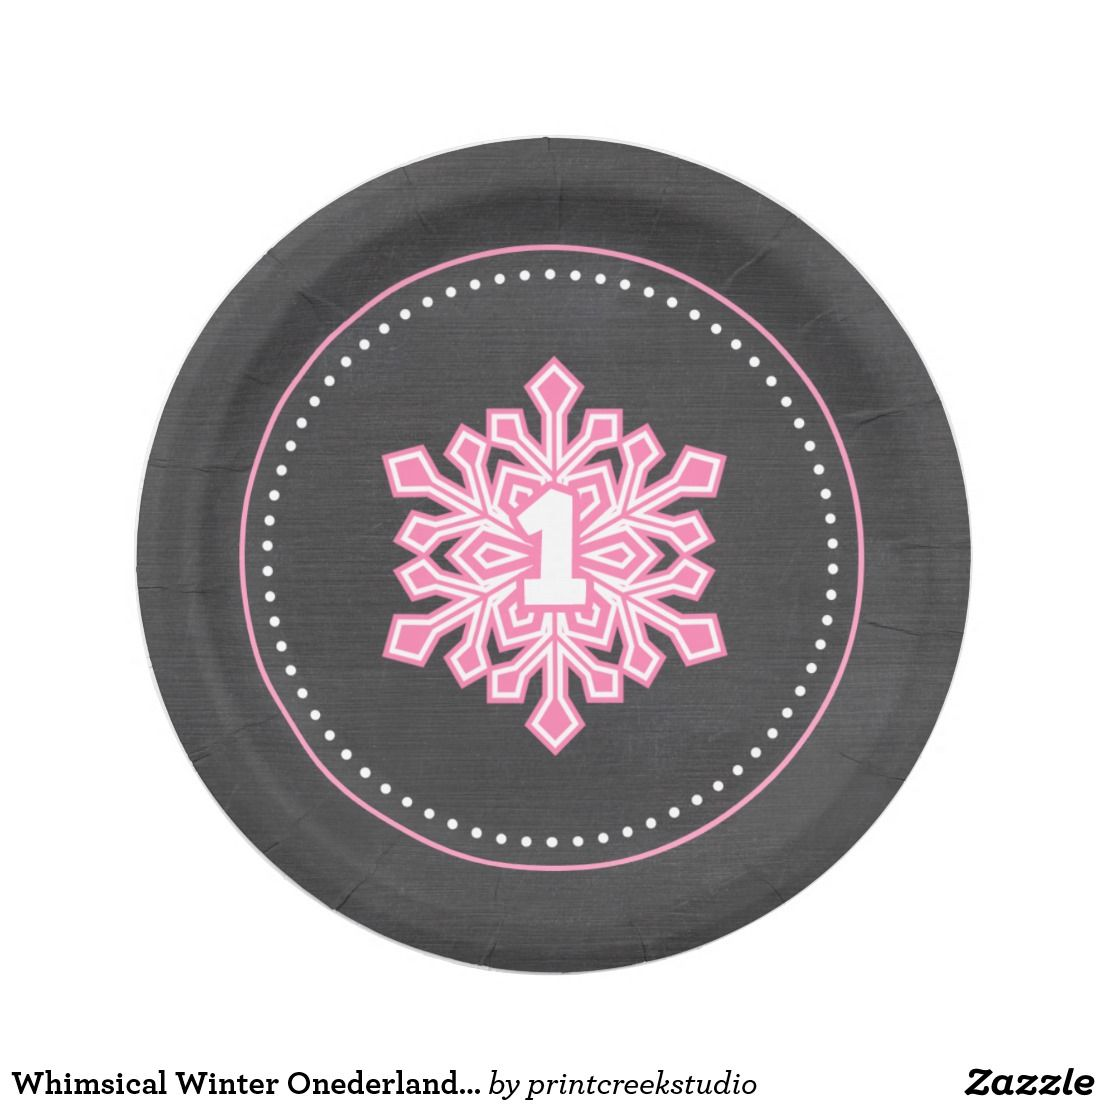 Whimsical Winter Onederland Snowflake Birthday Pin Paper Plate Pink snowflake chalkboard winter themed girl 1st birthday  sc 1 st  Pinterest & Whimsical Winter Onederland Snowflake Birthday Pin Paper Plate ...